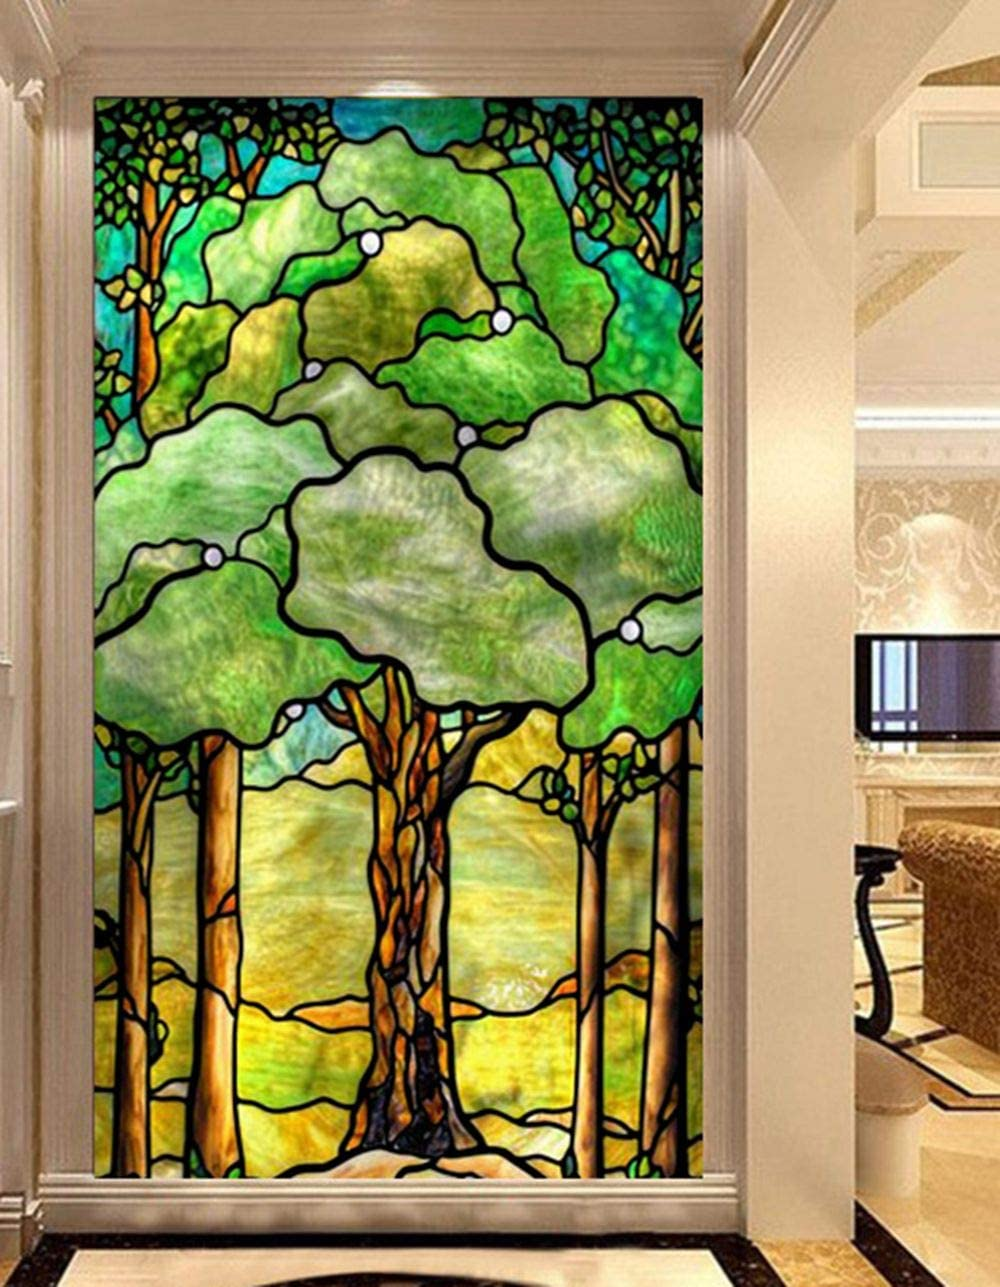 Recommended GGACEN Bathroom Max 83% OFF Privacy Window S Sticker Glass Film